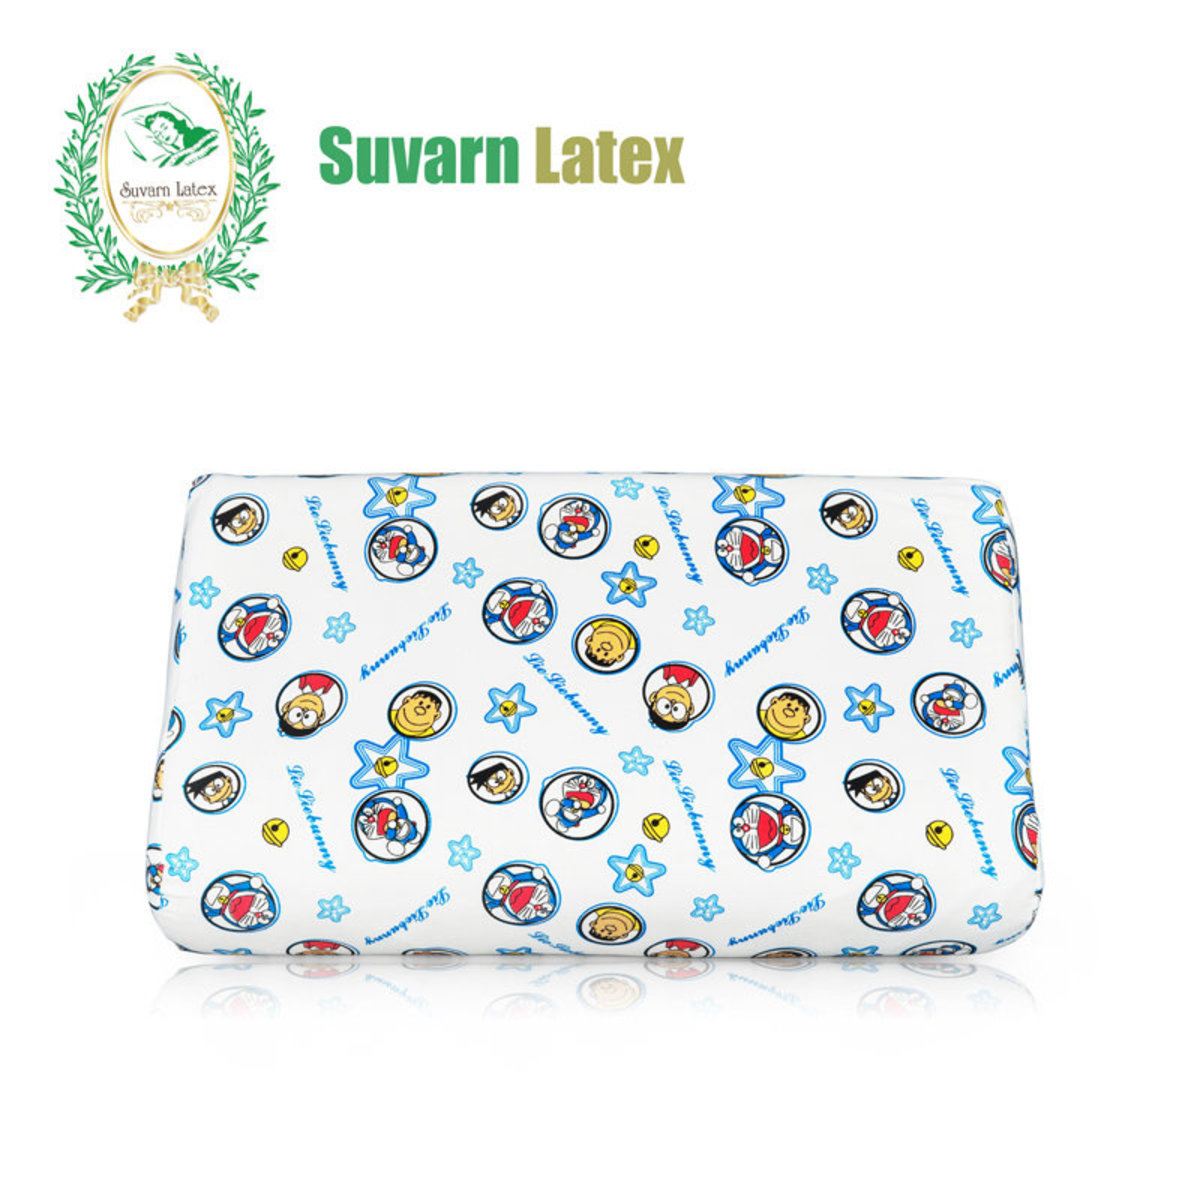 SUVARN SVK1 Latex Pillow (suitable for 4-12 years old)